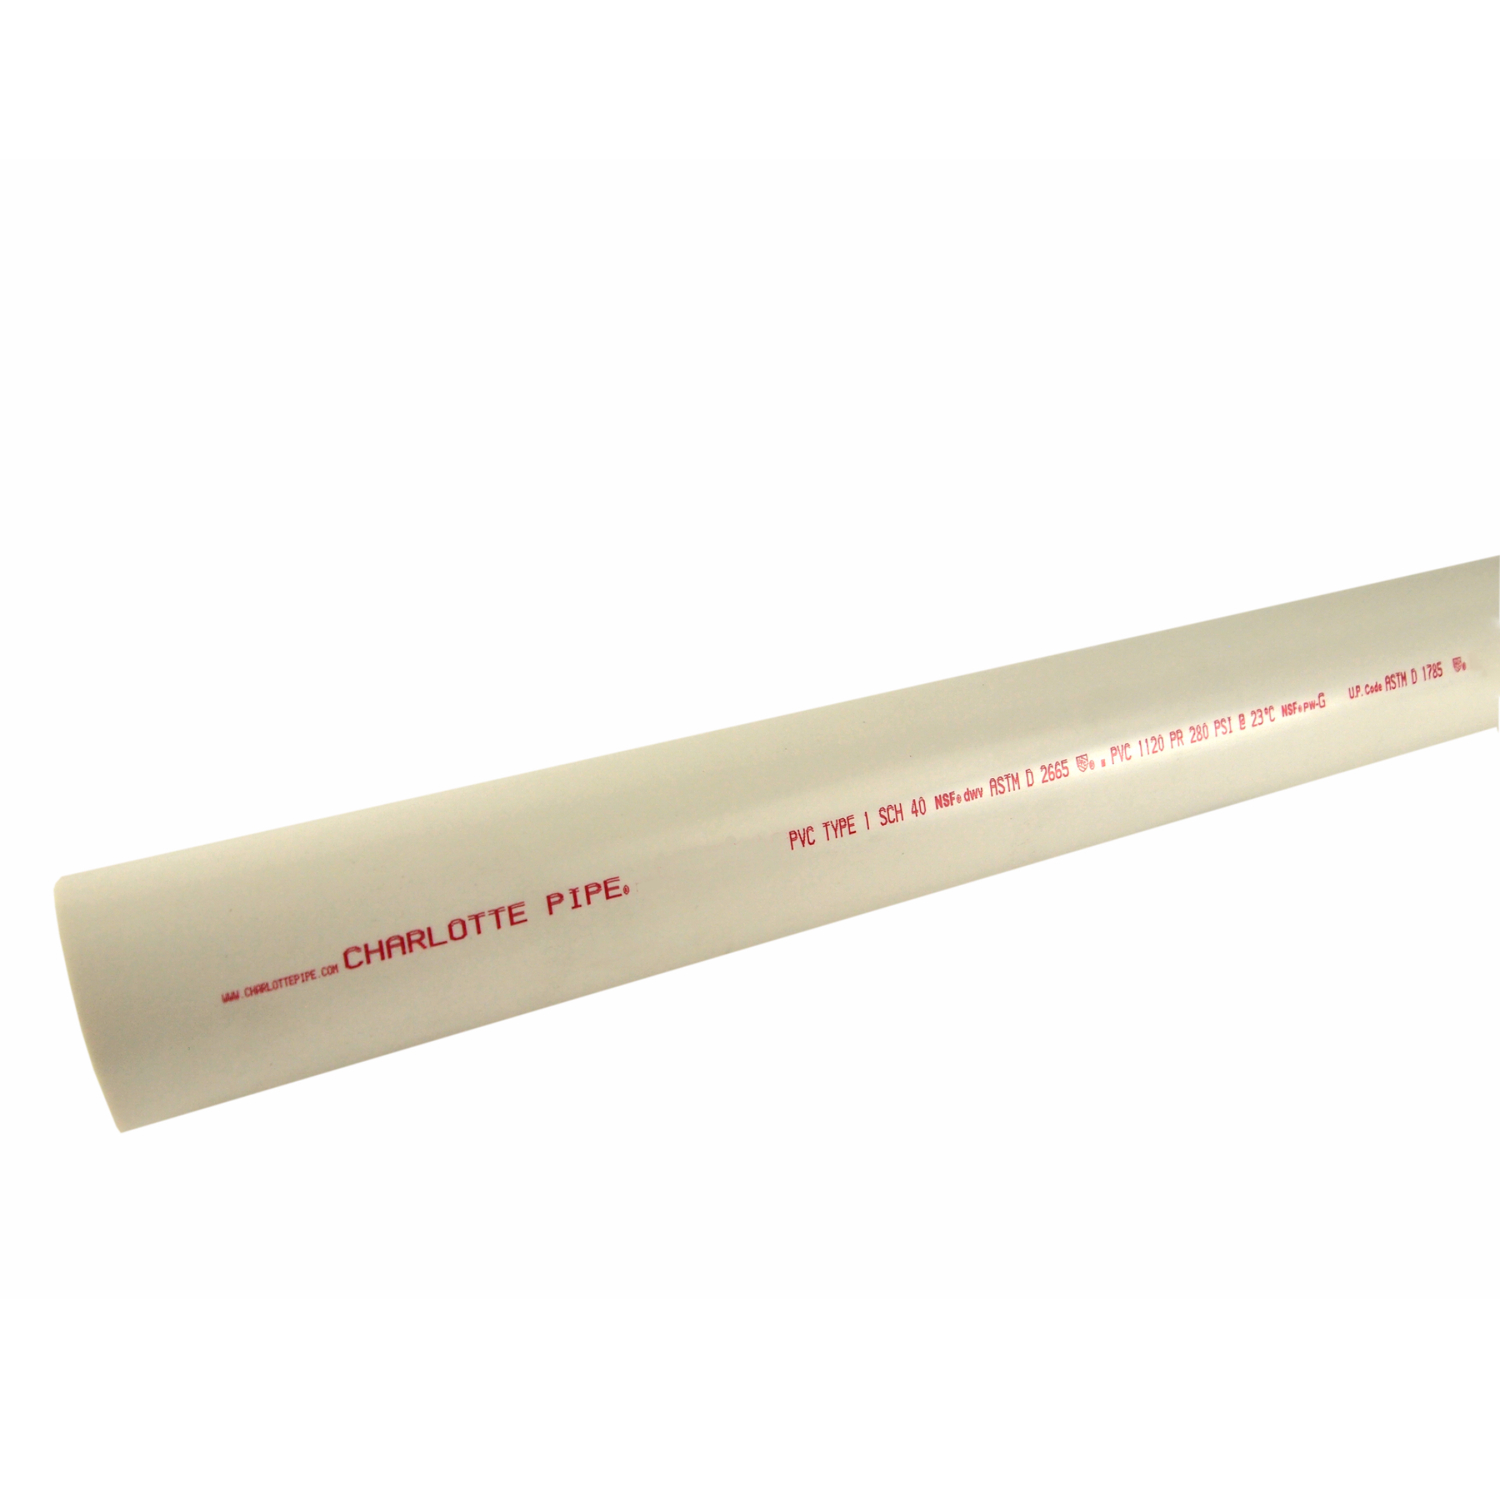 Charlotte Pipe  PVC Pipe  1-1/2 in. Dia. x 10 ft. L Plain End  Schedule 40  330 psi